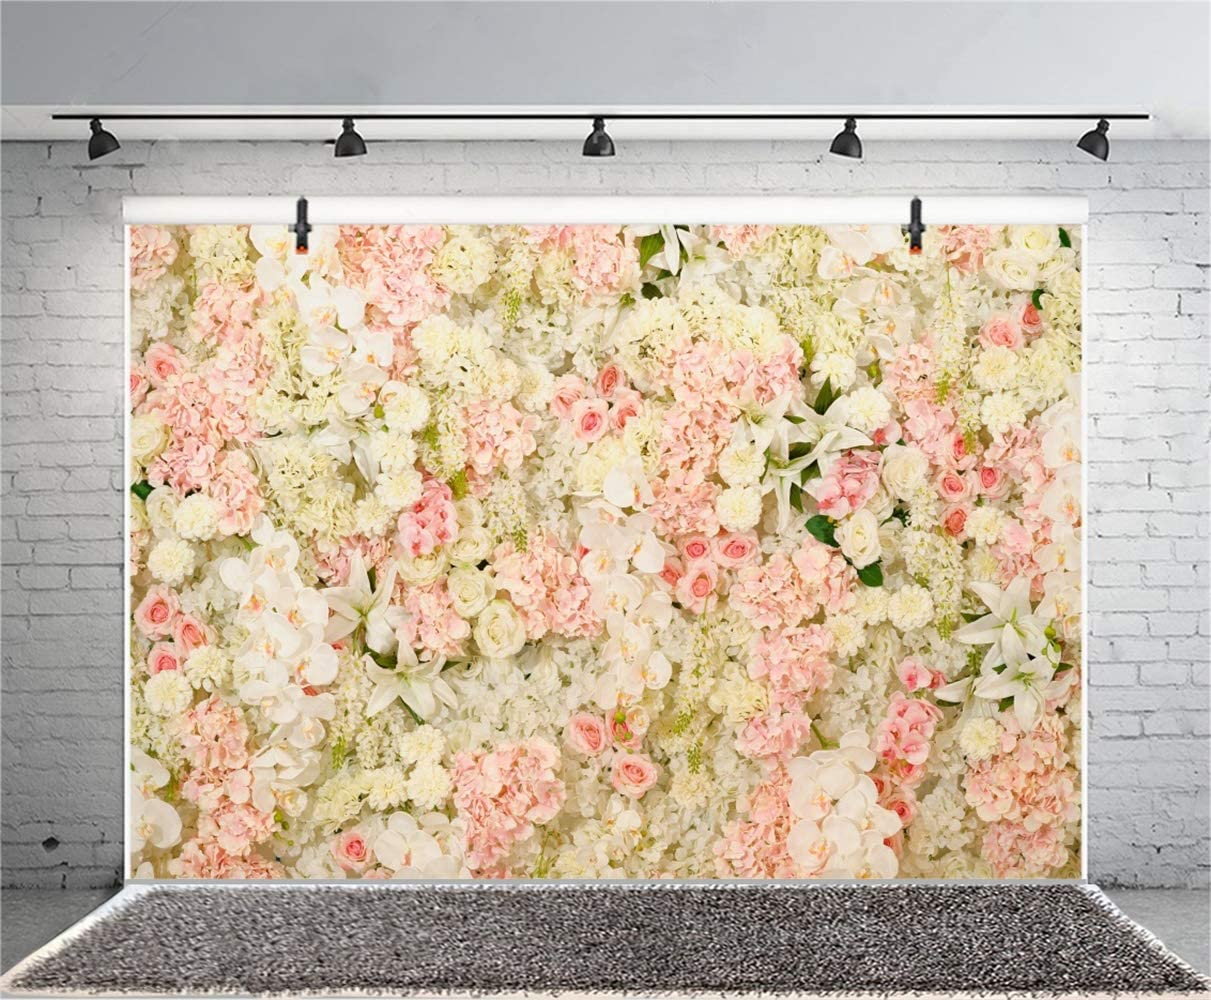 Red Roses Background 6x9ft Wedding Polyester Photography Backdrop Yellow Wall Blossom Flowers Green Door Leaves Summer Holiday Italy Street Girls Lovers Portraits Shoot Studio Photo Prop Decor